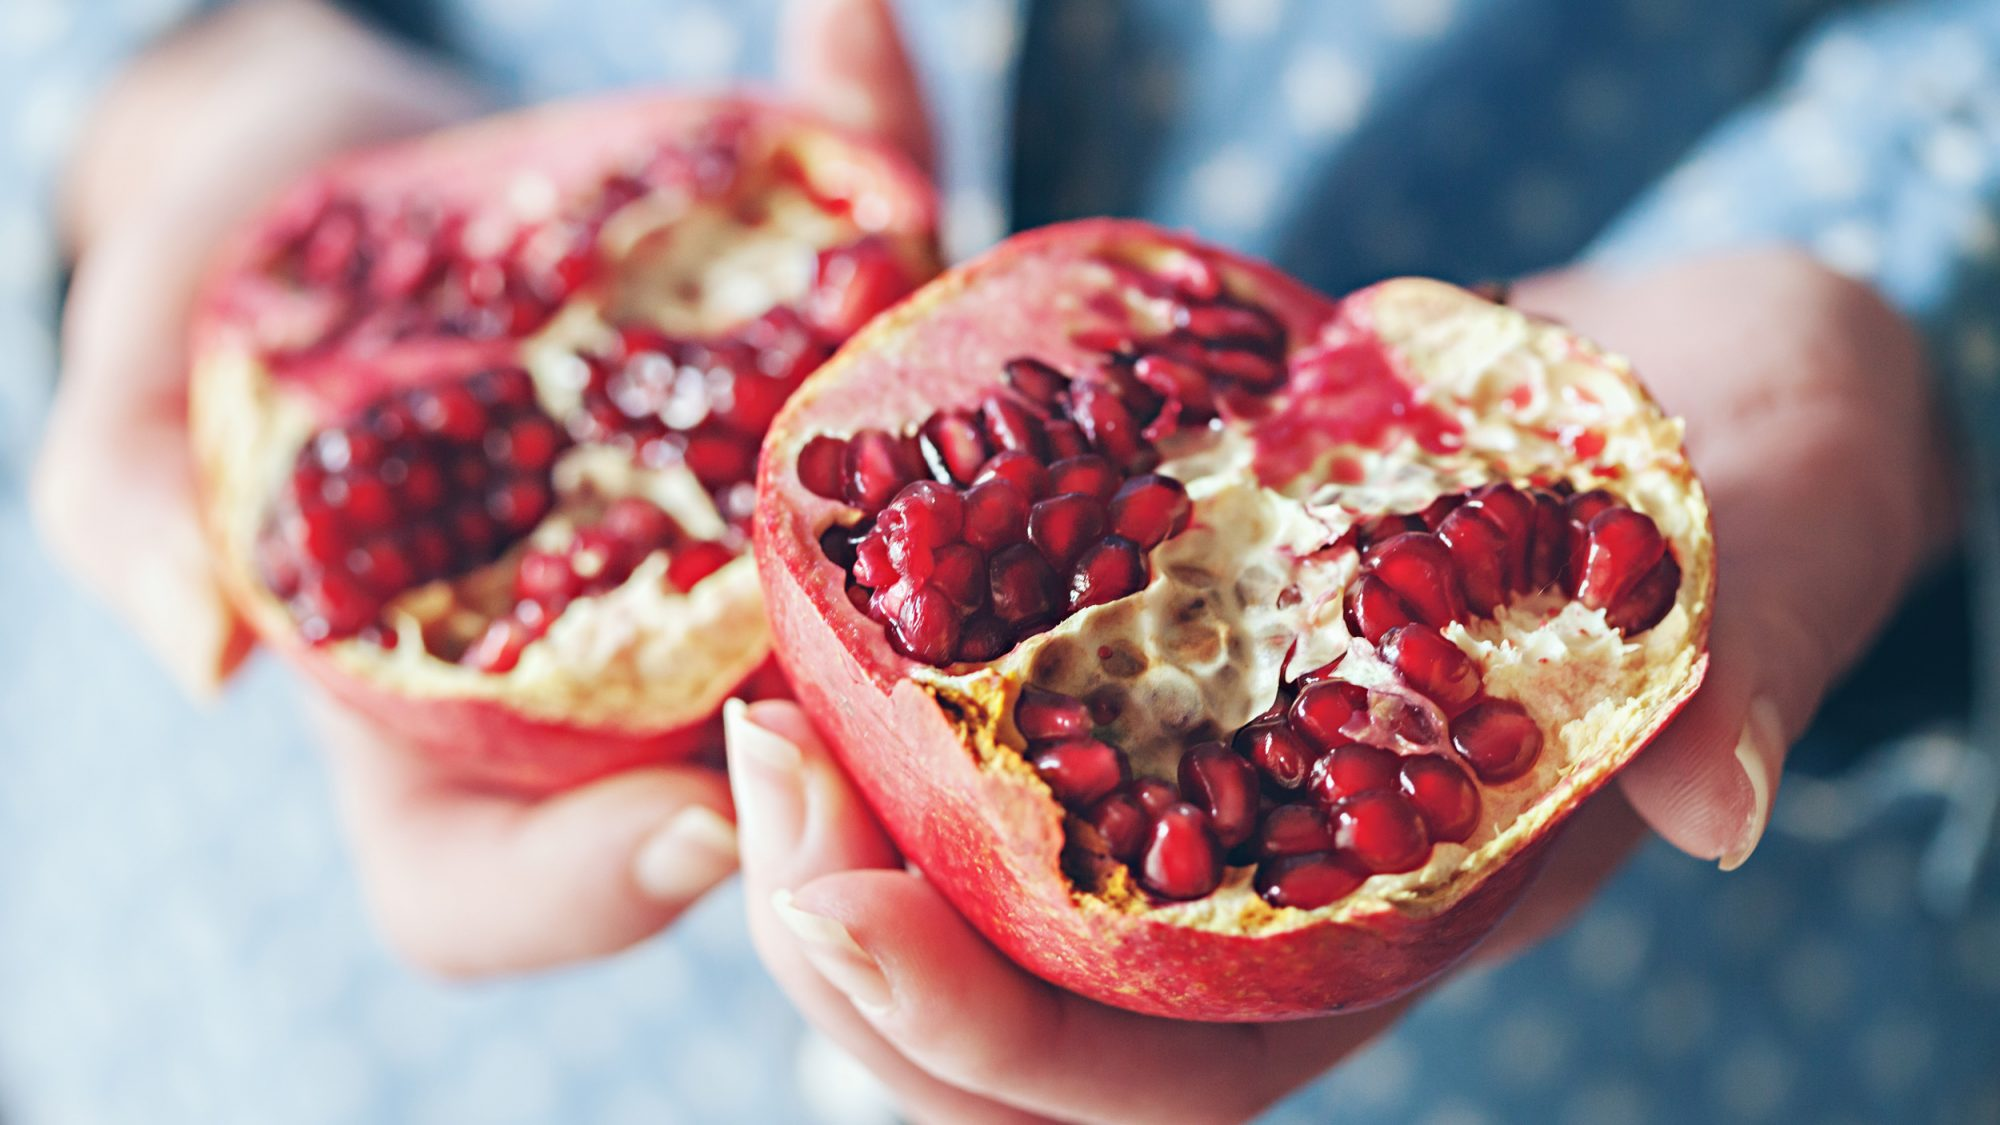 Pomegranate Anti-Aging Effects